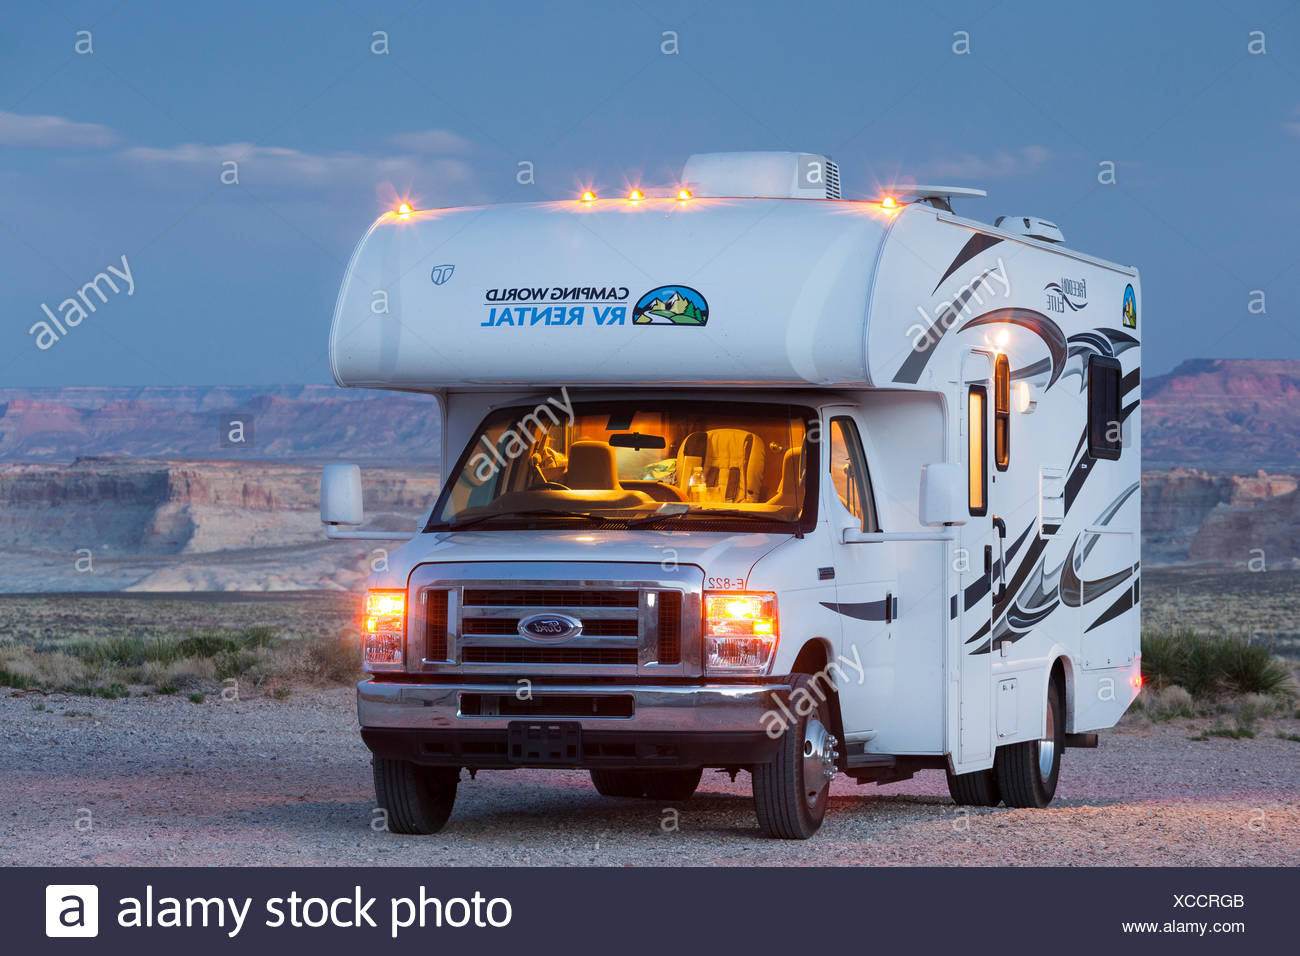 Camper in Glen Canyon National Recreation Area, Utah, Stati Uniti d'America Immagini Stock